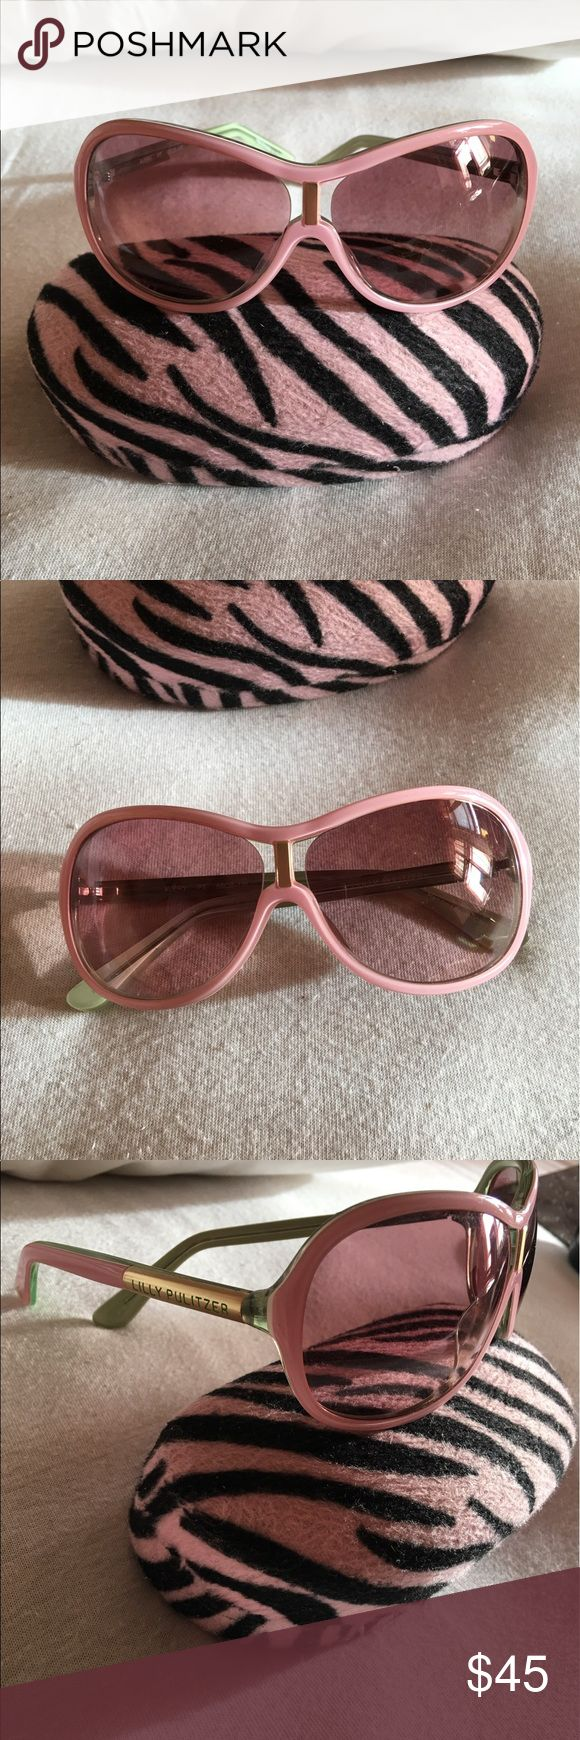 LILLY PULITZER Sunglasses Adorable Pink Rimmed Lilly Pulitzer Sunglasses. 100% Authentic. Style Name: AVERY. Pink rims with green detail. Light brown tint. Comes with pink zebra design case. In great pristine condition. No damage, no scratches. Lens are perfect with no scratches. Barely used and just stored. Lilly Pulitzer Accessories Sunglasses